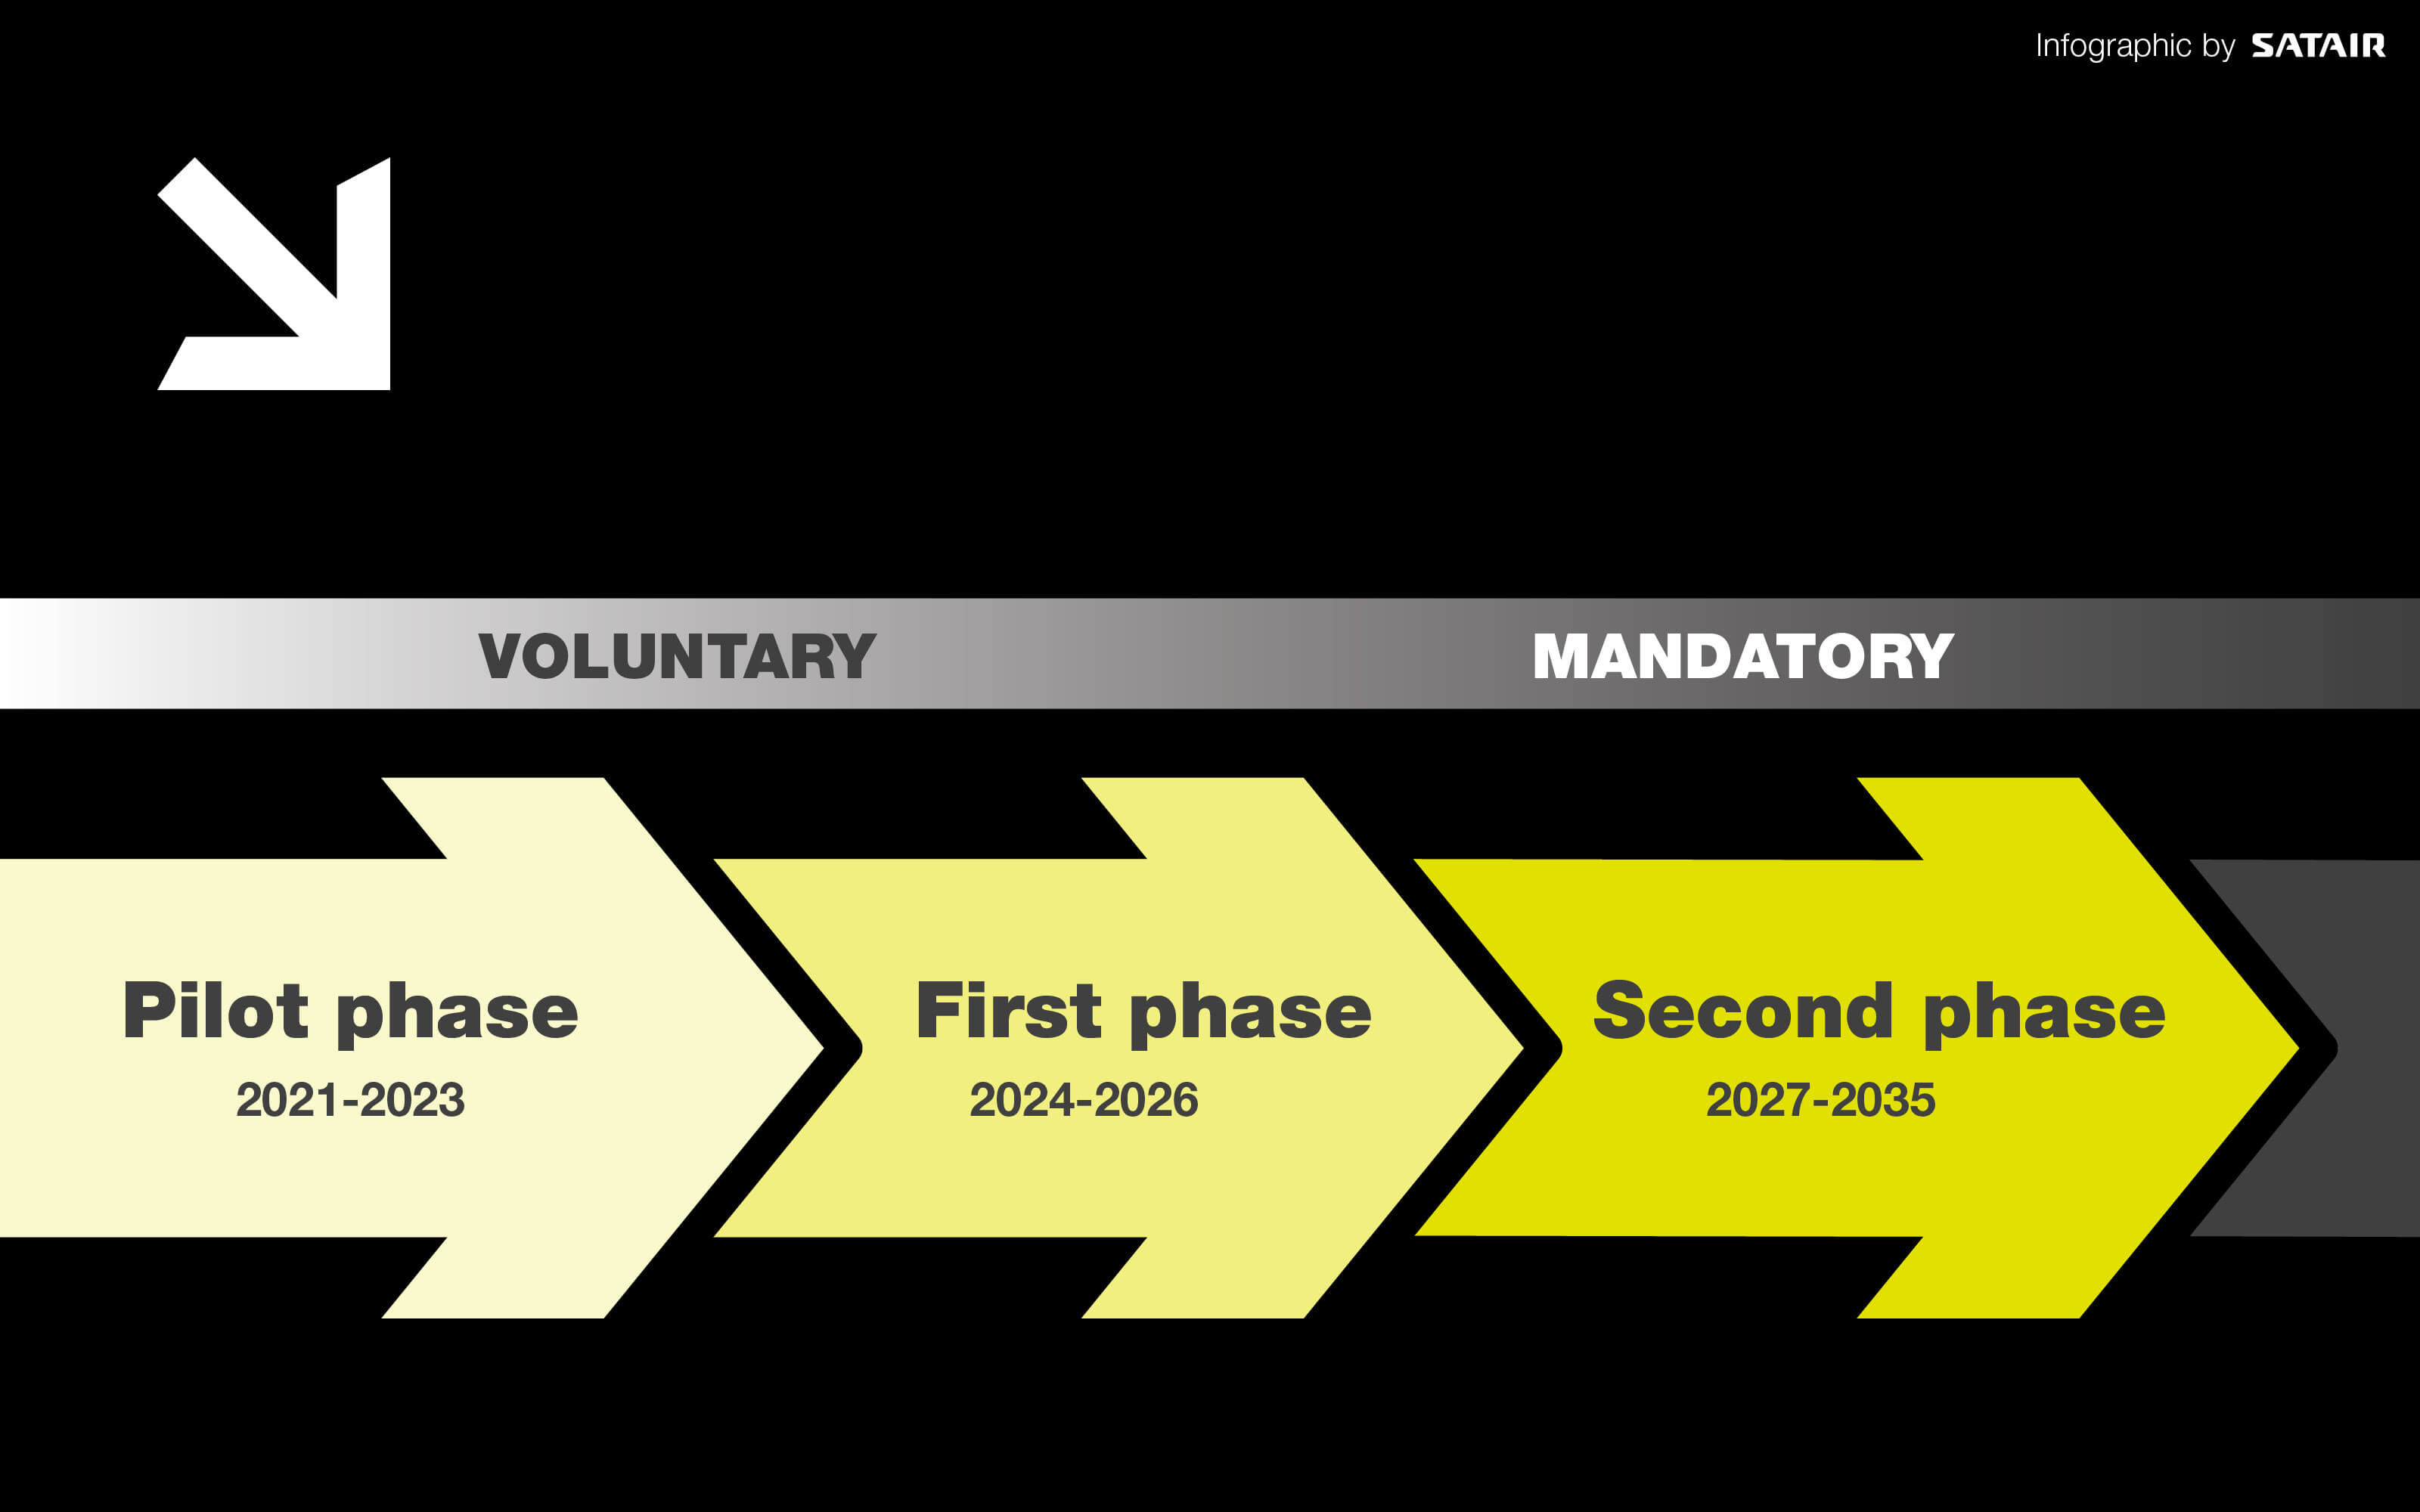 CORSIA phases: Pilot 2021-23, First phase, 2024-26, Second phase, 2027-35